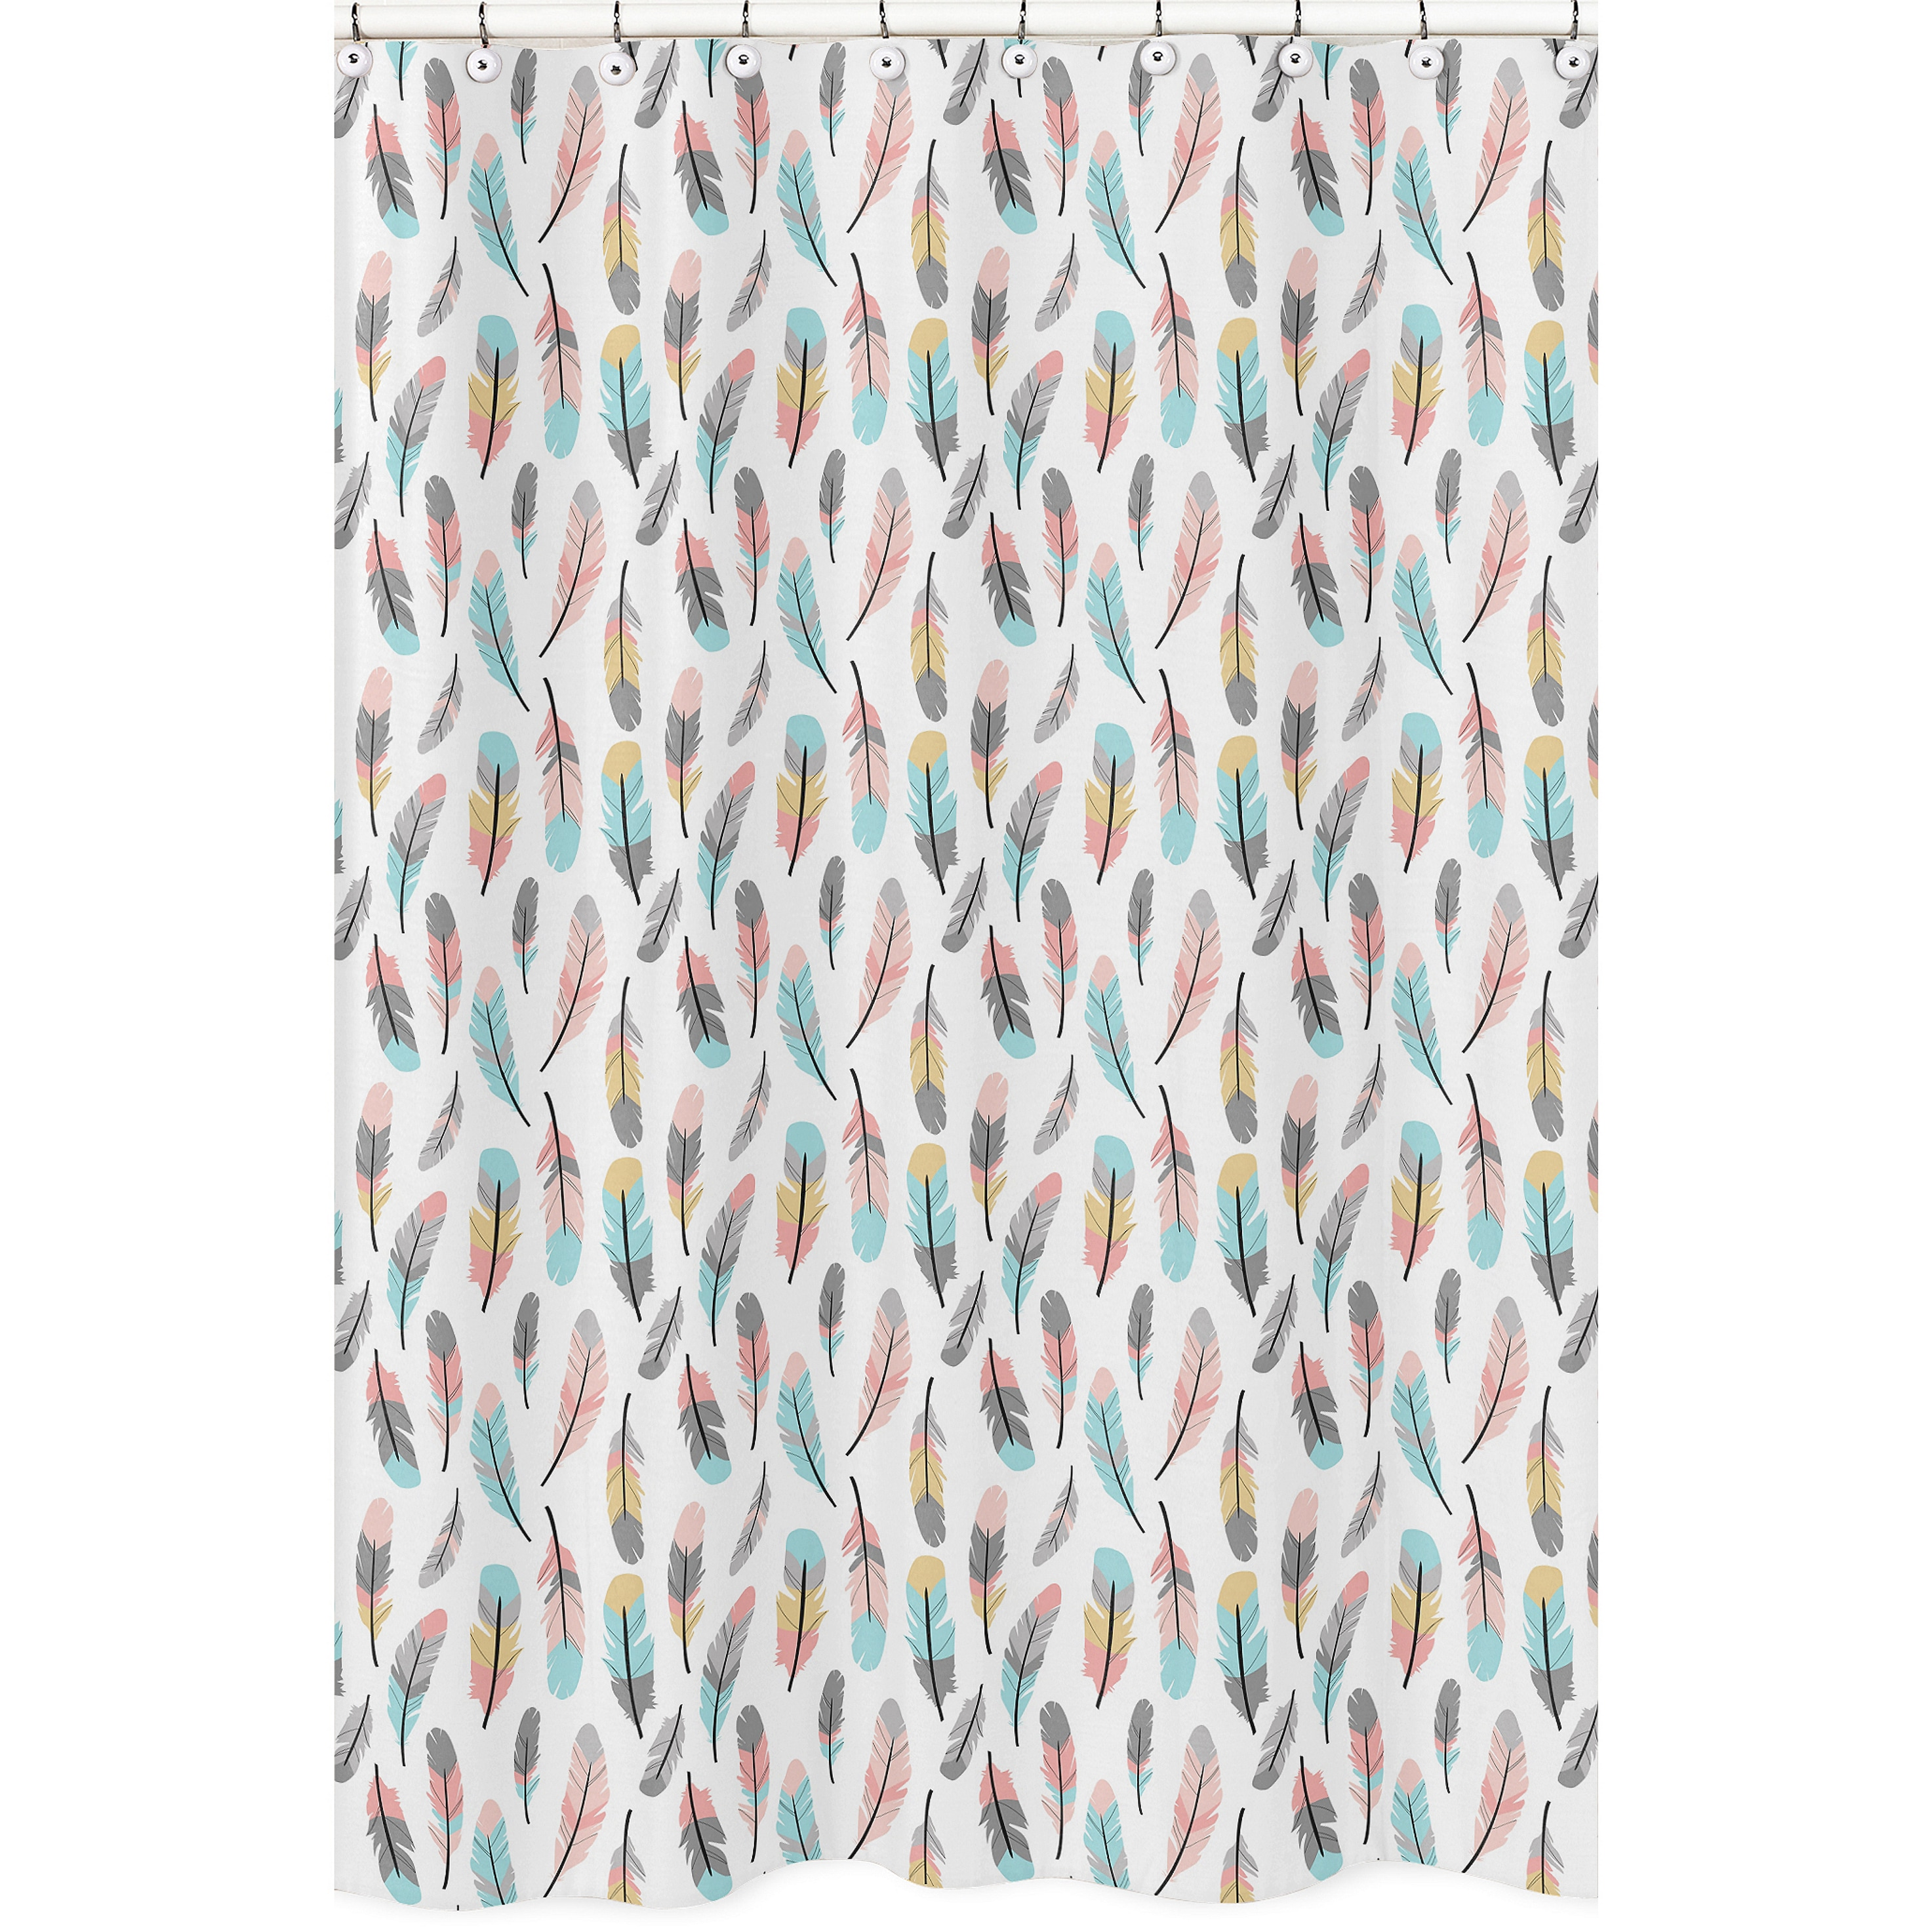 Shower Curtain for the Feather Collection by Sweet Jojo D...